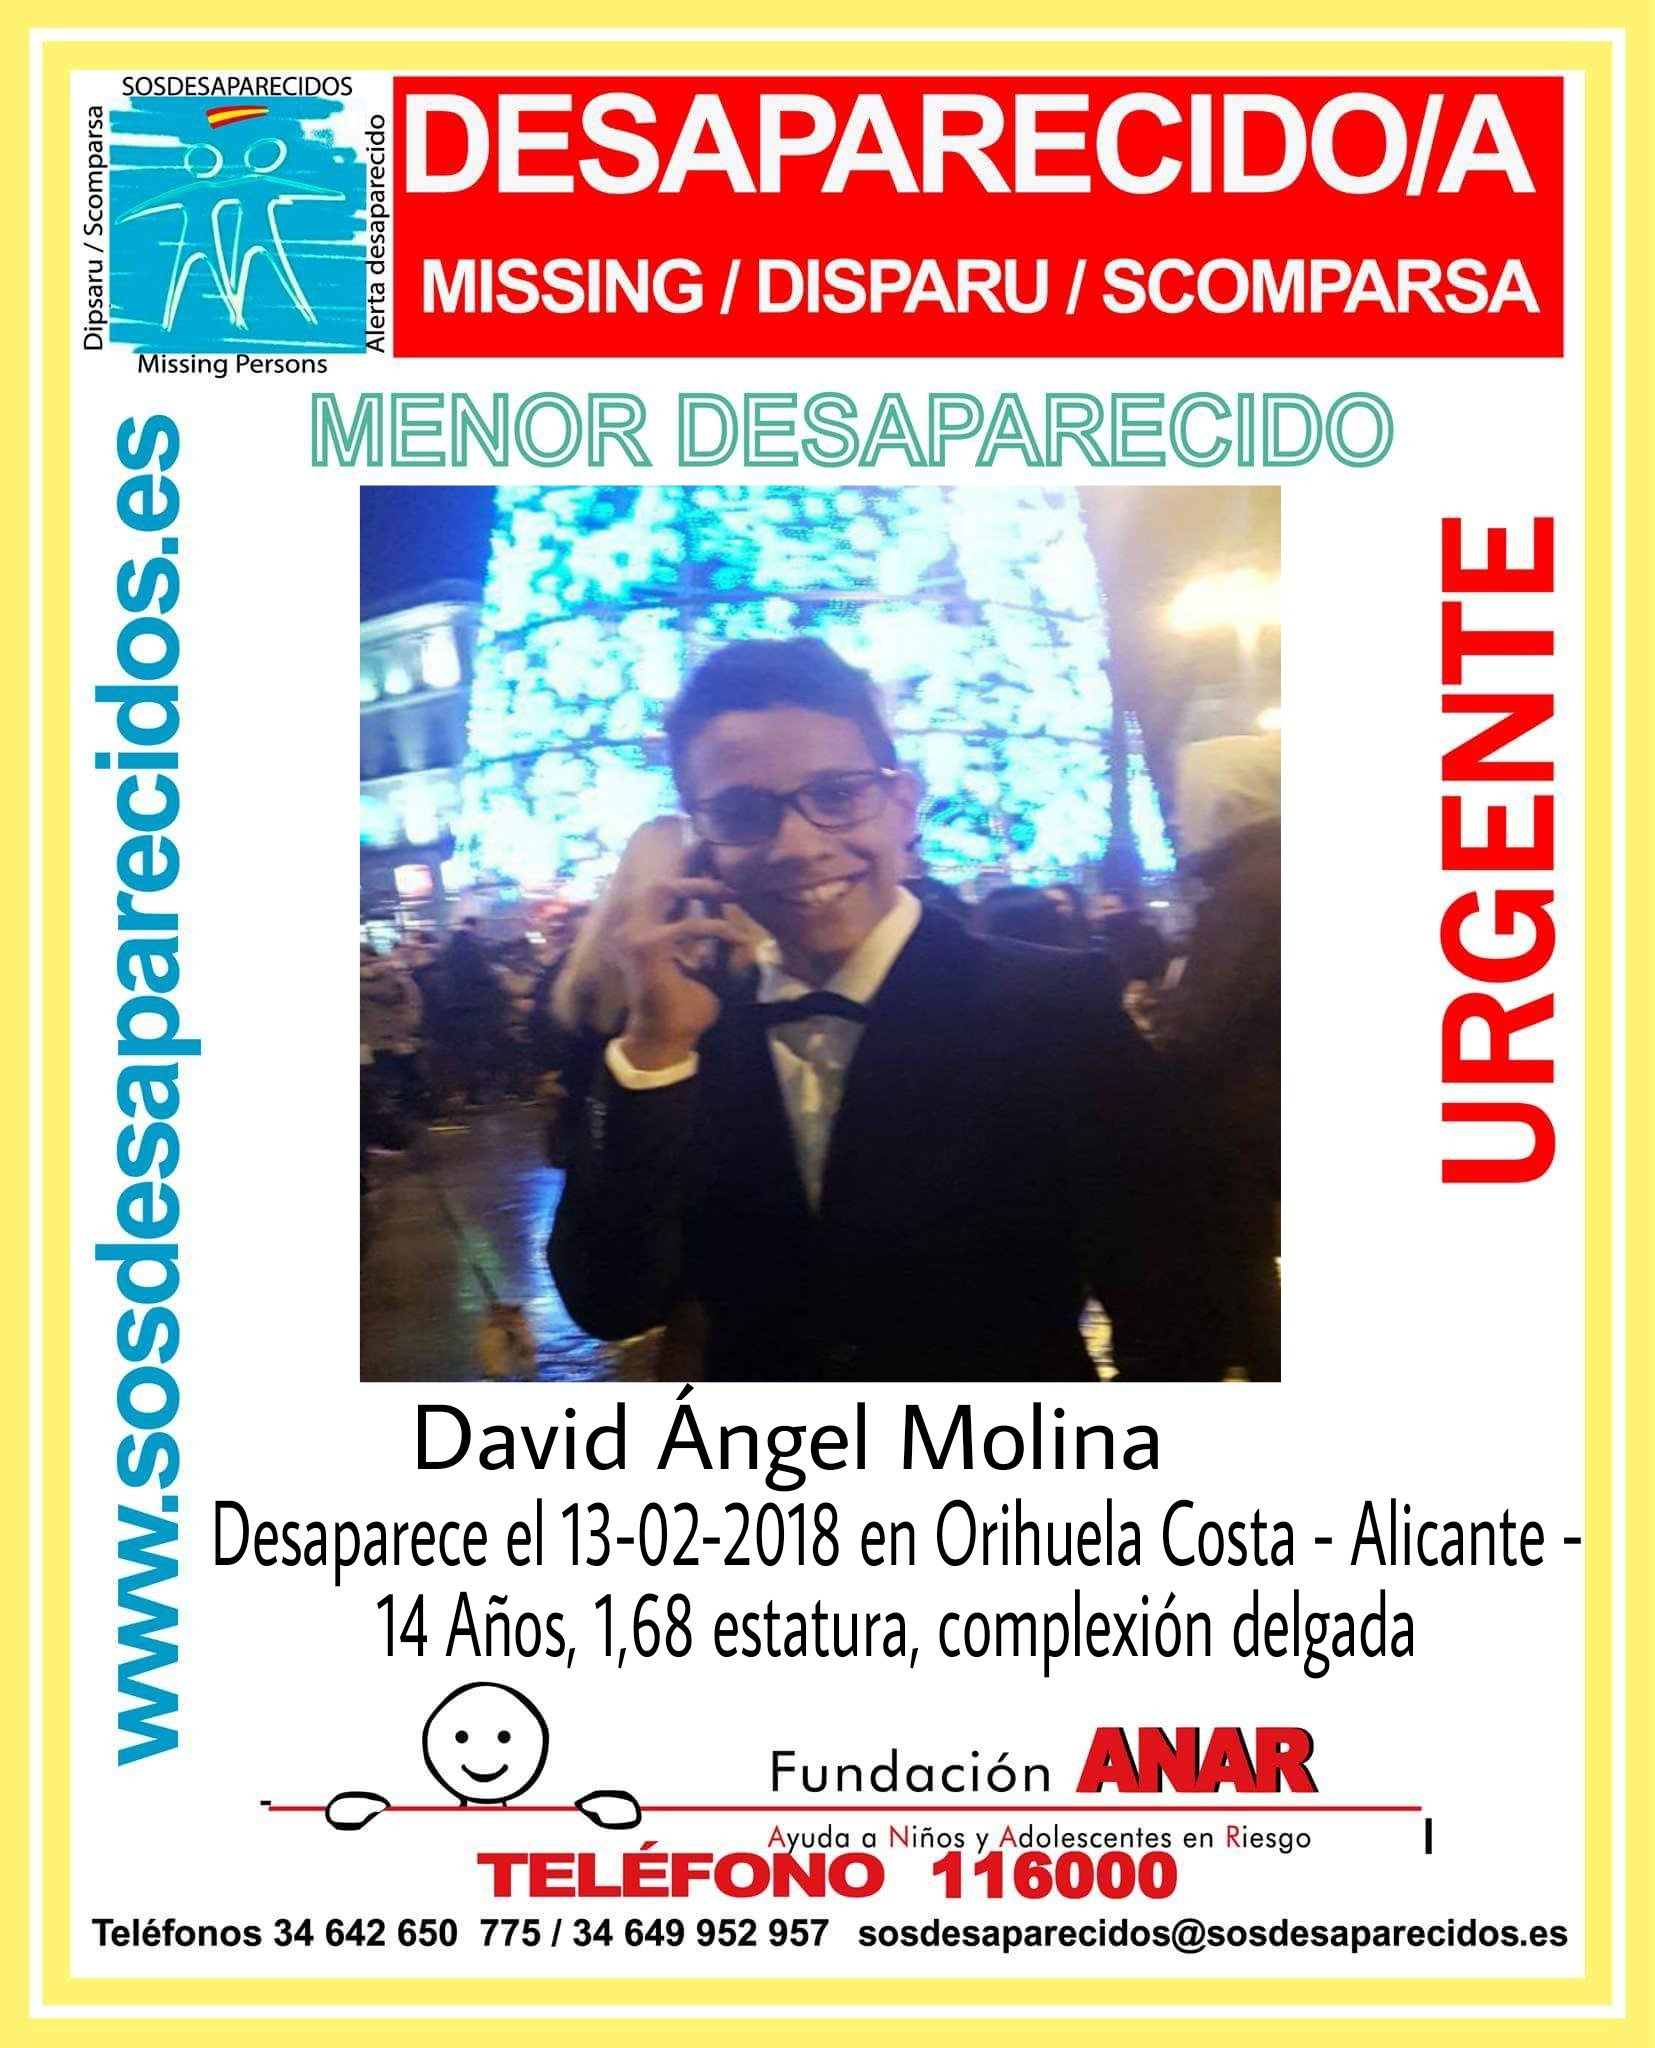 14 year old boy Missing on the Orihuela Costa